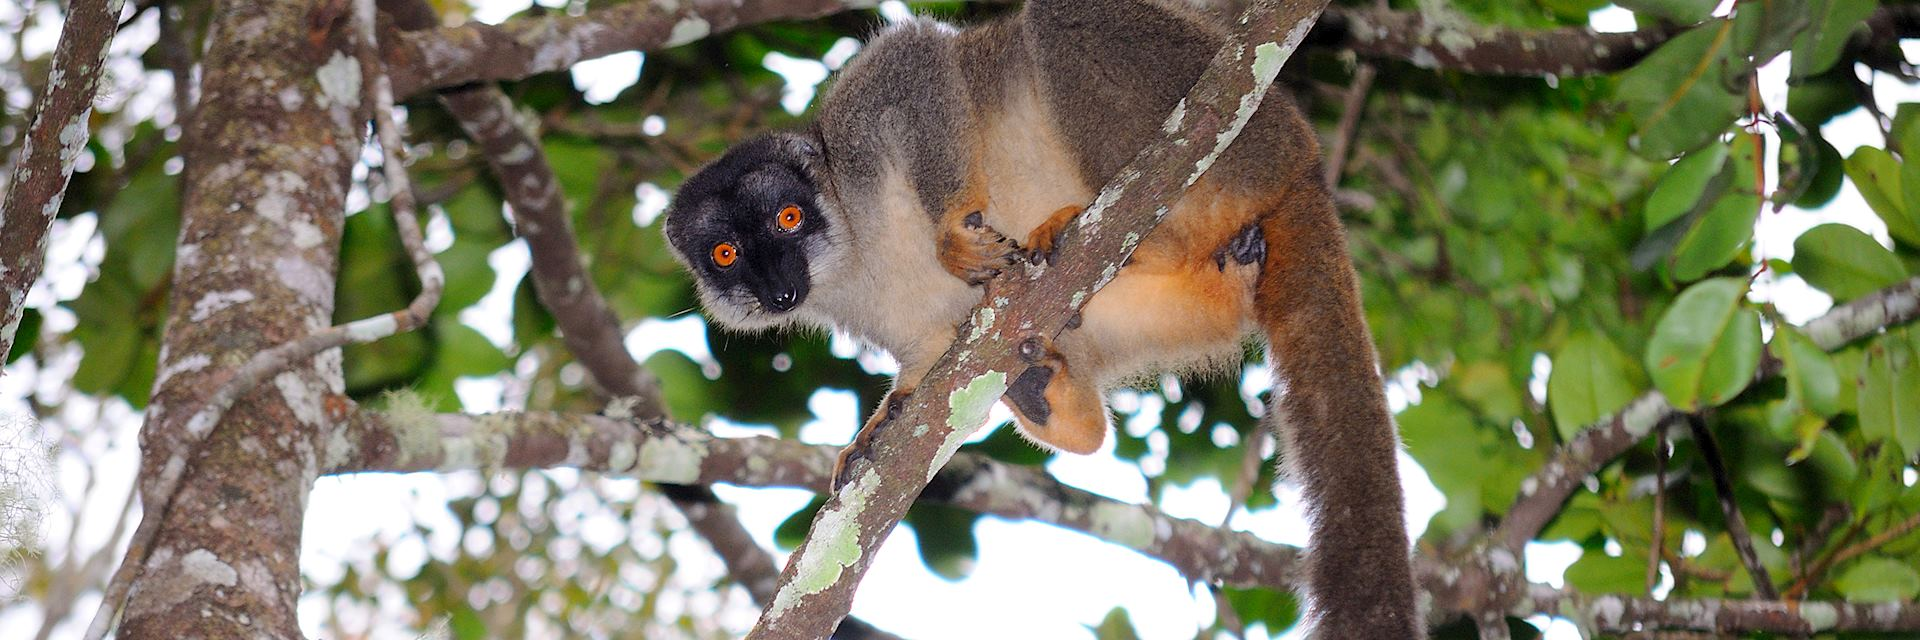 Brown lemur, Andasibe National Park